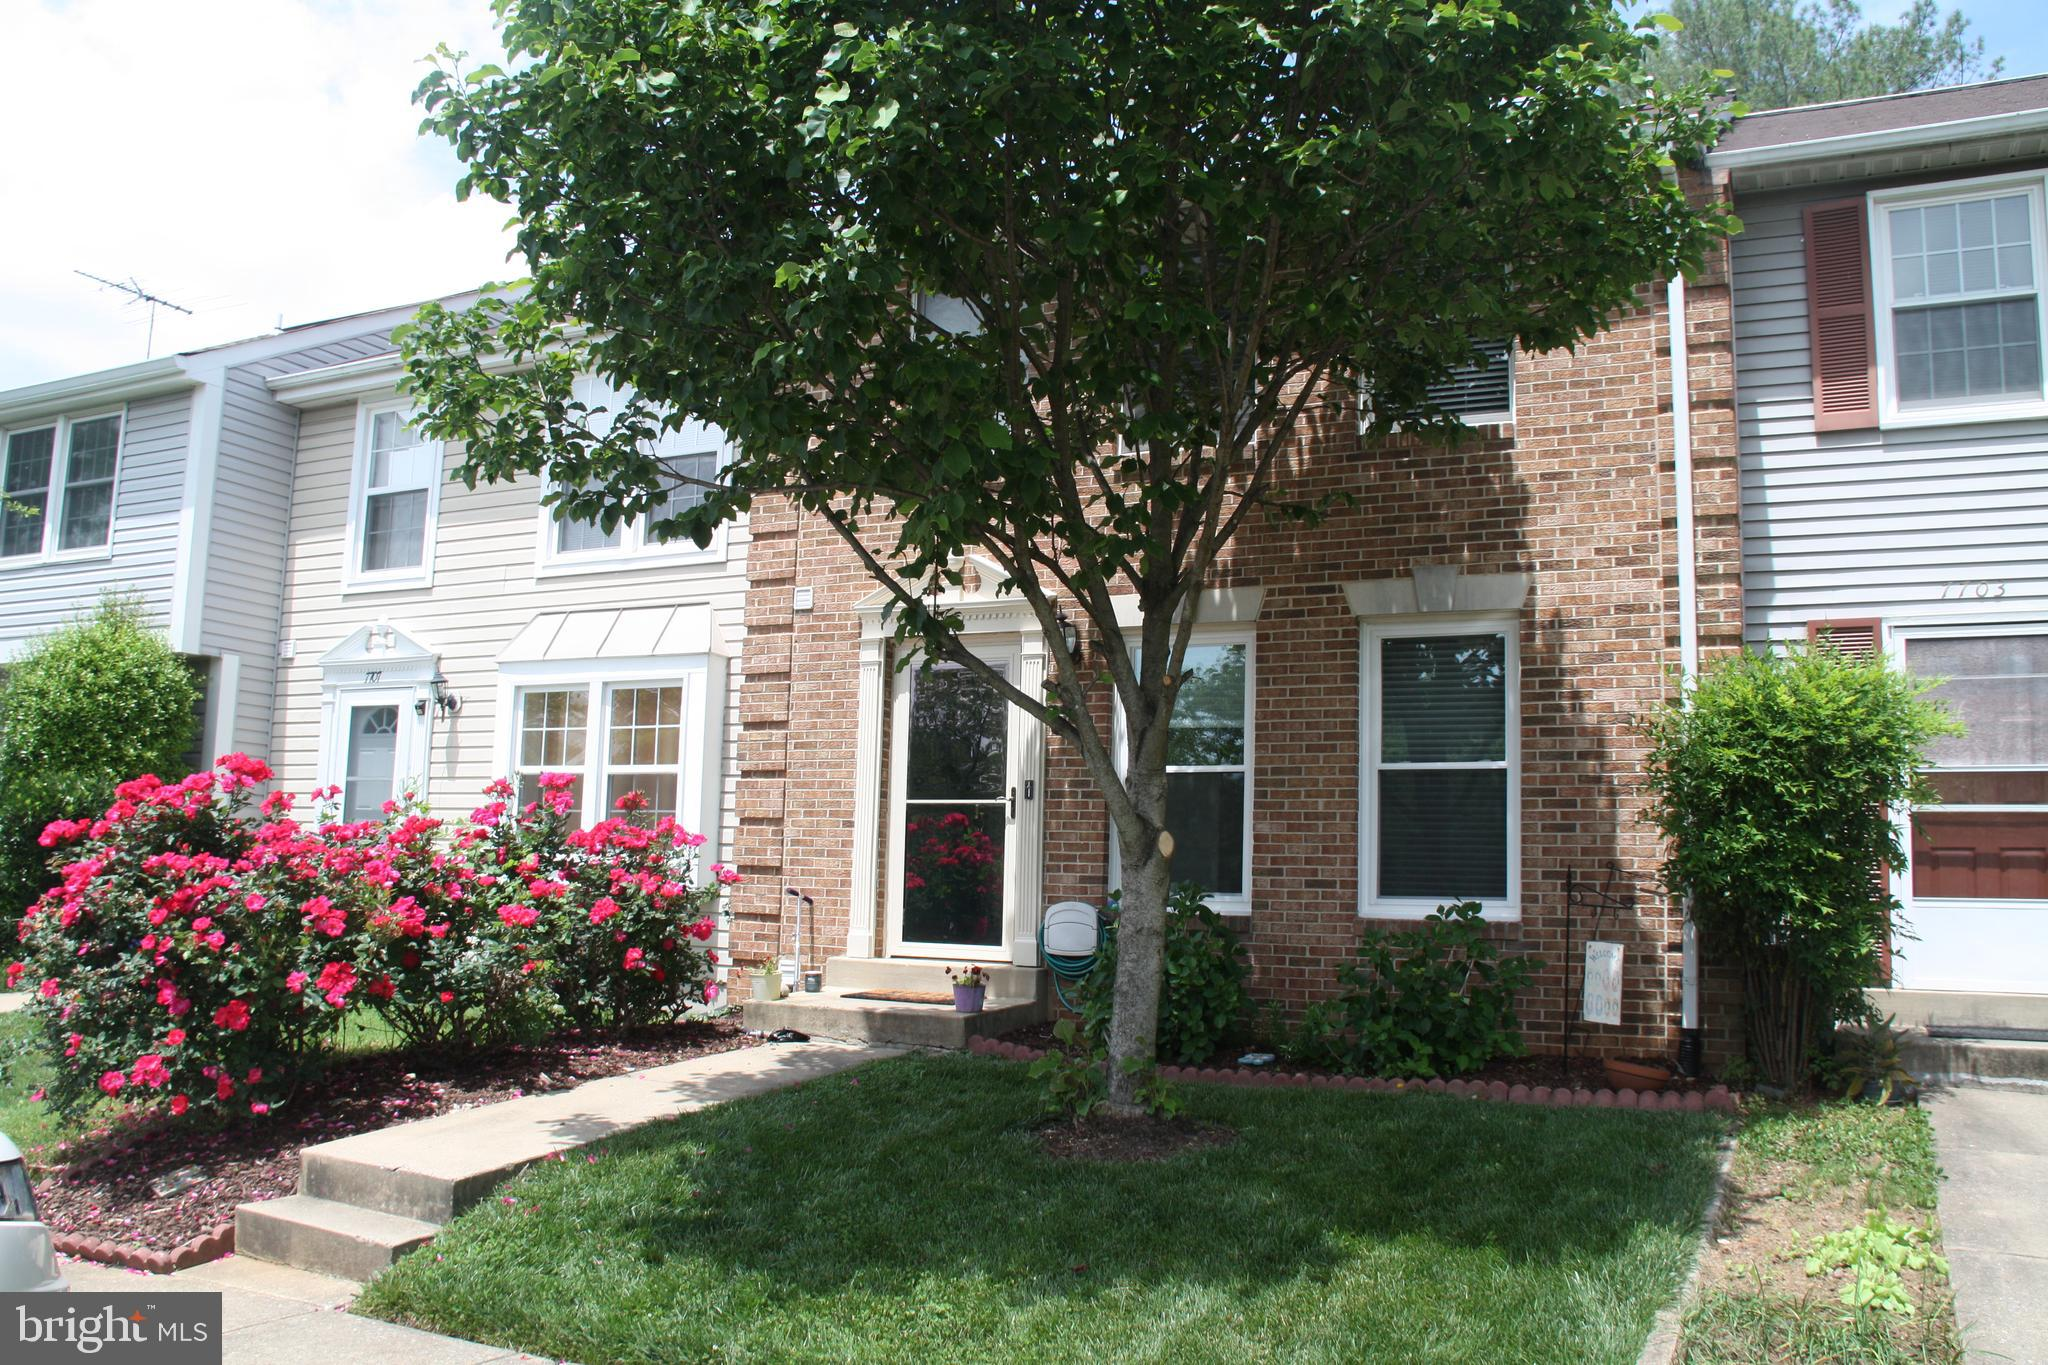 Offers will be reviewed by 7 pm on Wednesday, June 3rd. The only townhouse for sale in sought after